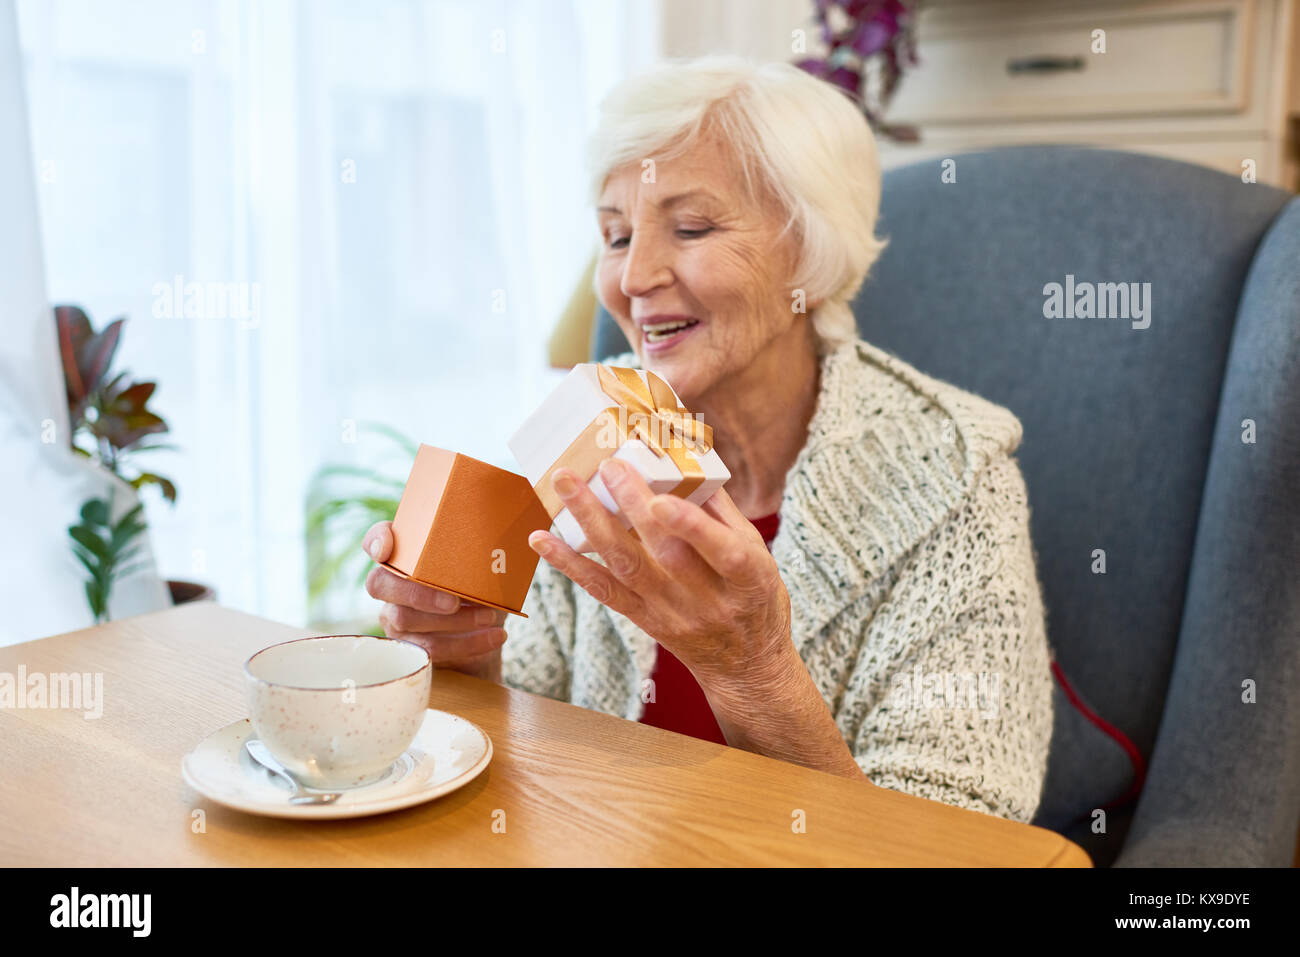 Celebrating Birthday at Cozy Cafe - Stock Image